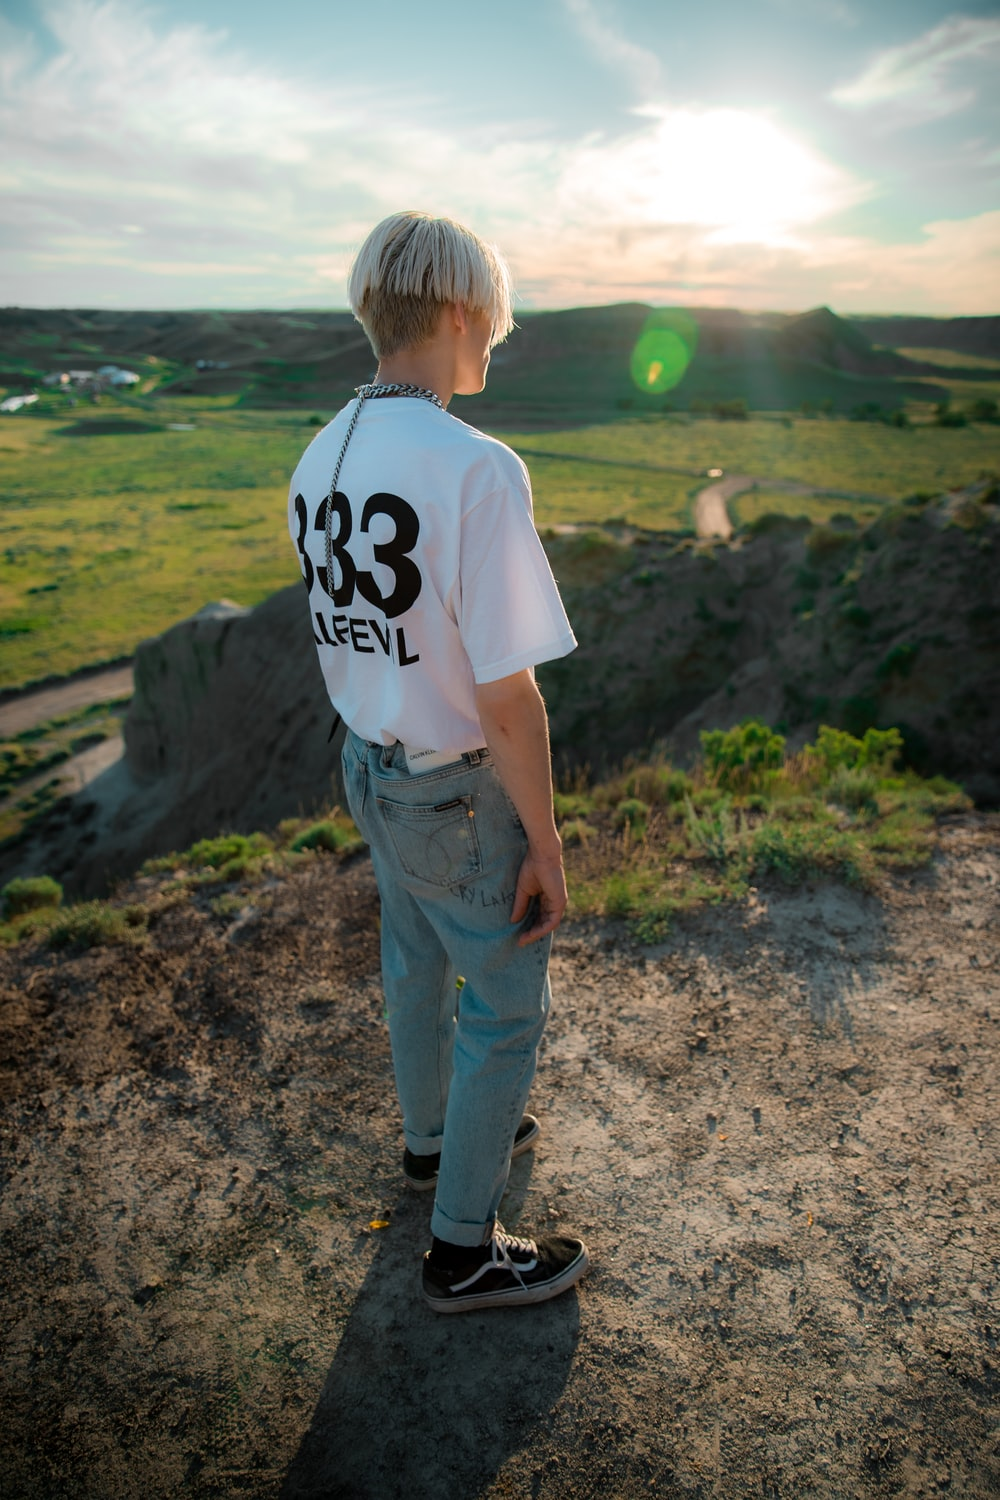 boy in white t-shirt and blue denim jeans standing on dirt ground during daytime